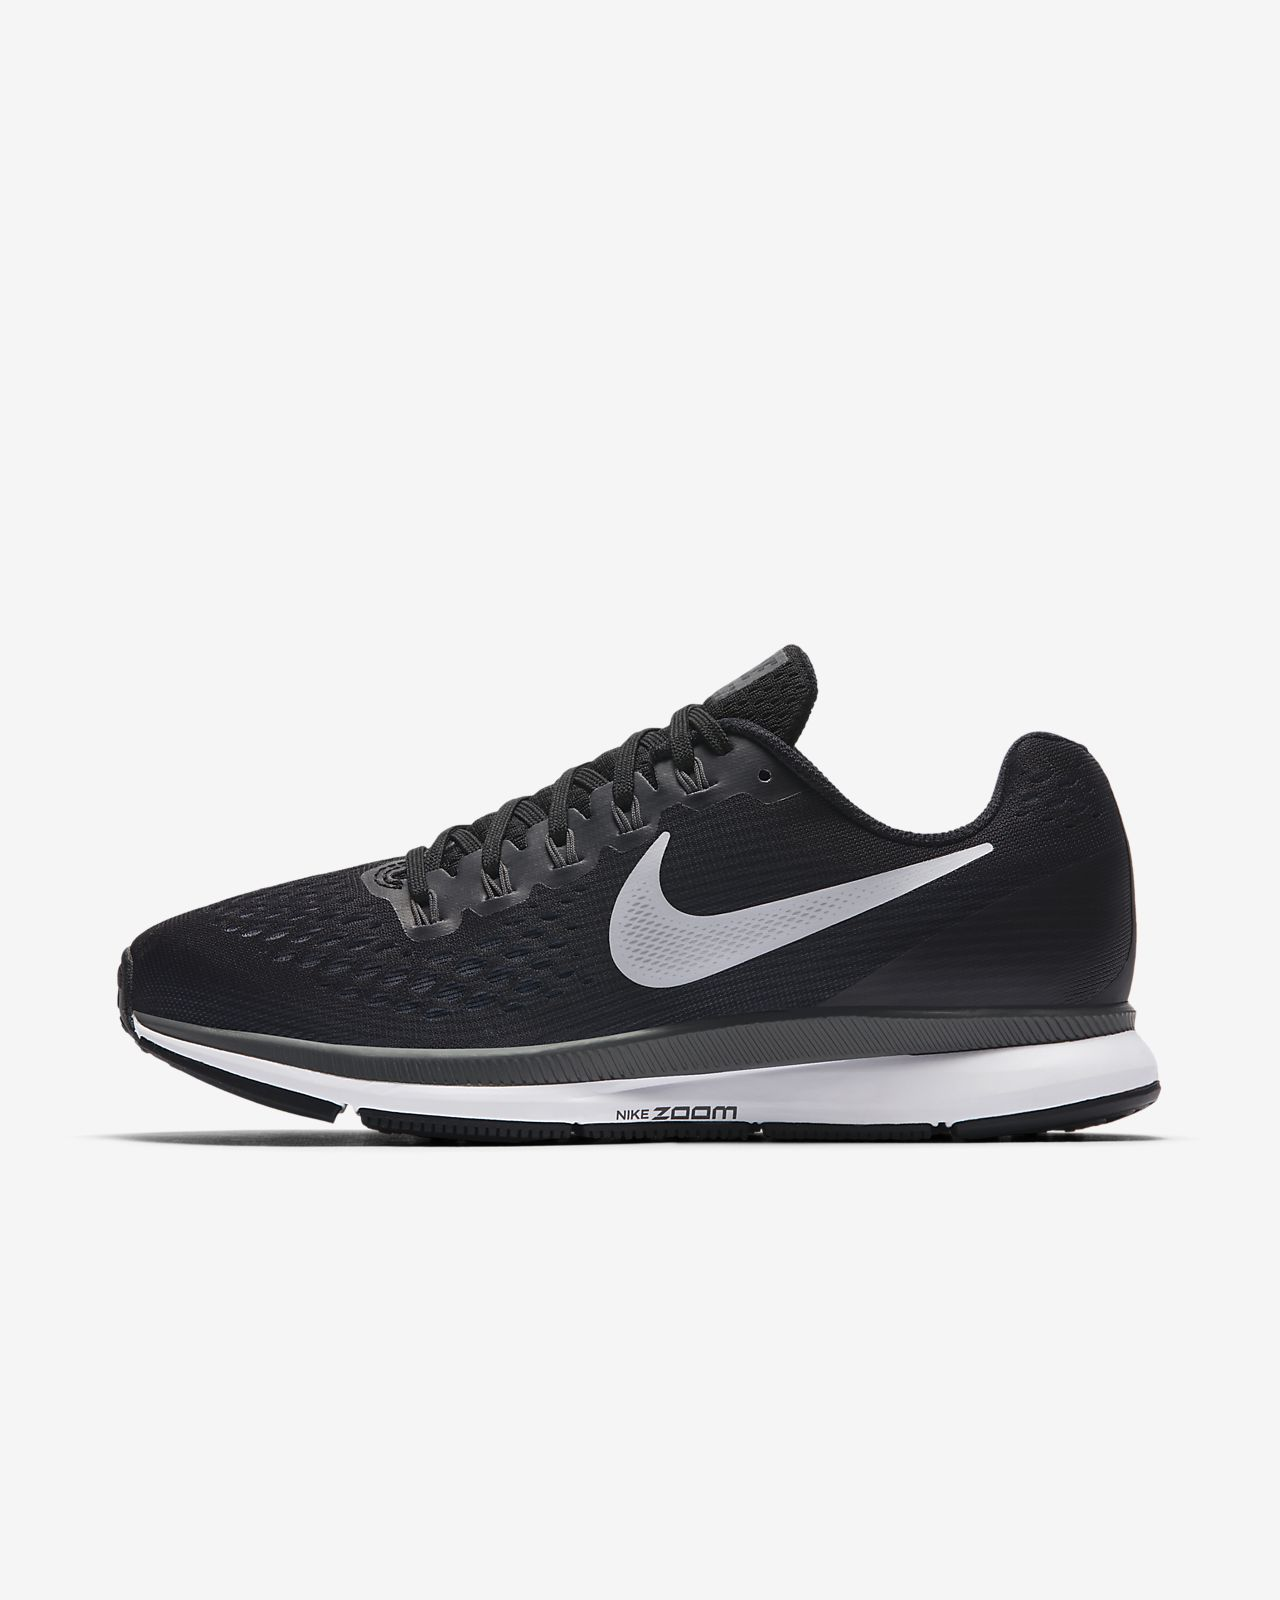 NIKE Womens Nike Air Zoom Pegasus 34 880560-003 BLACK Size 5